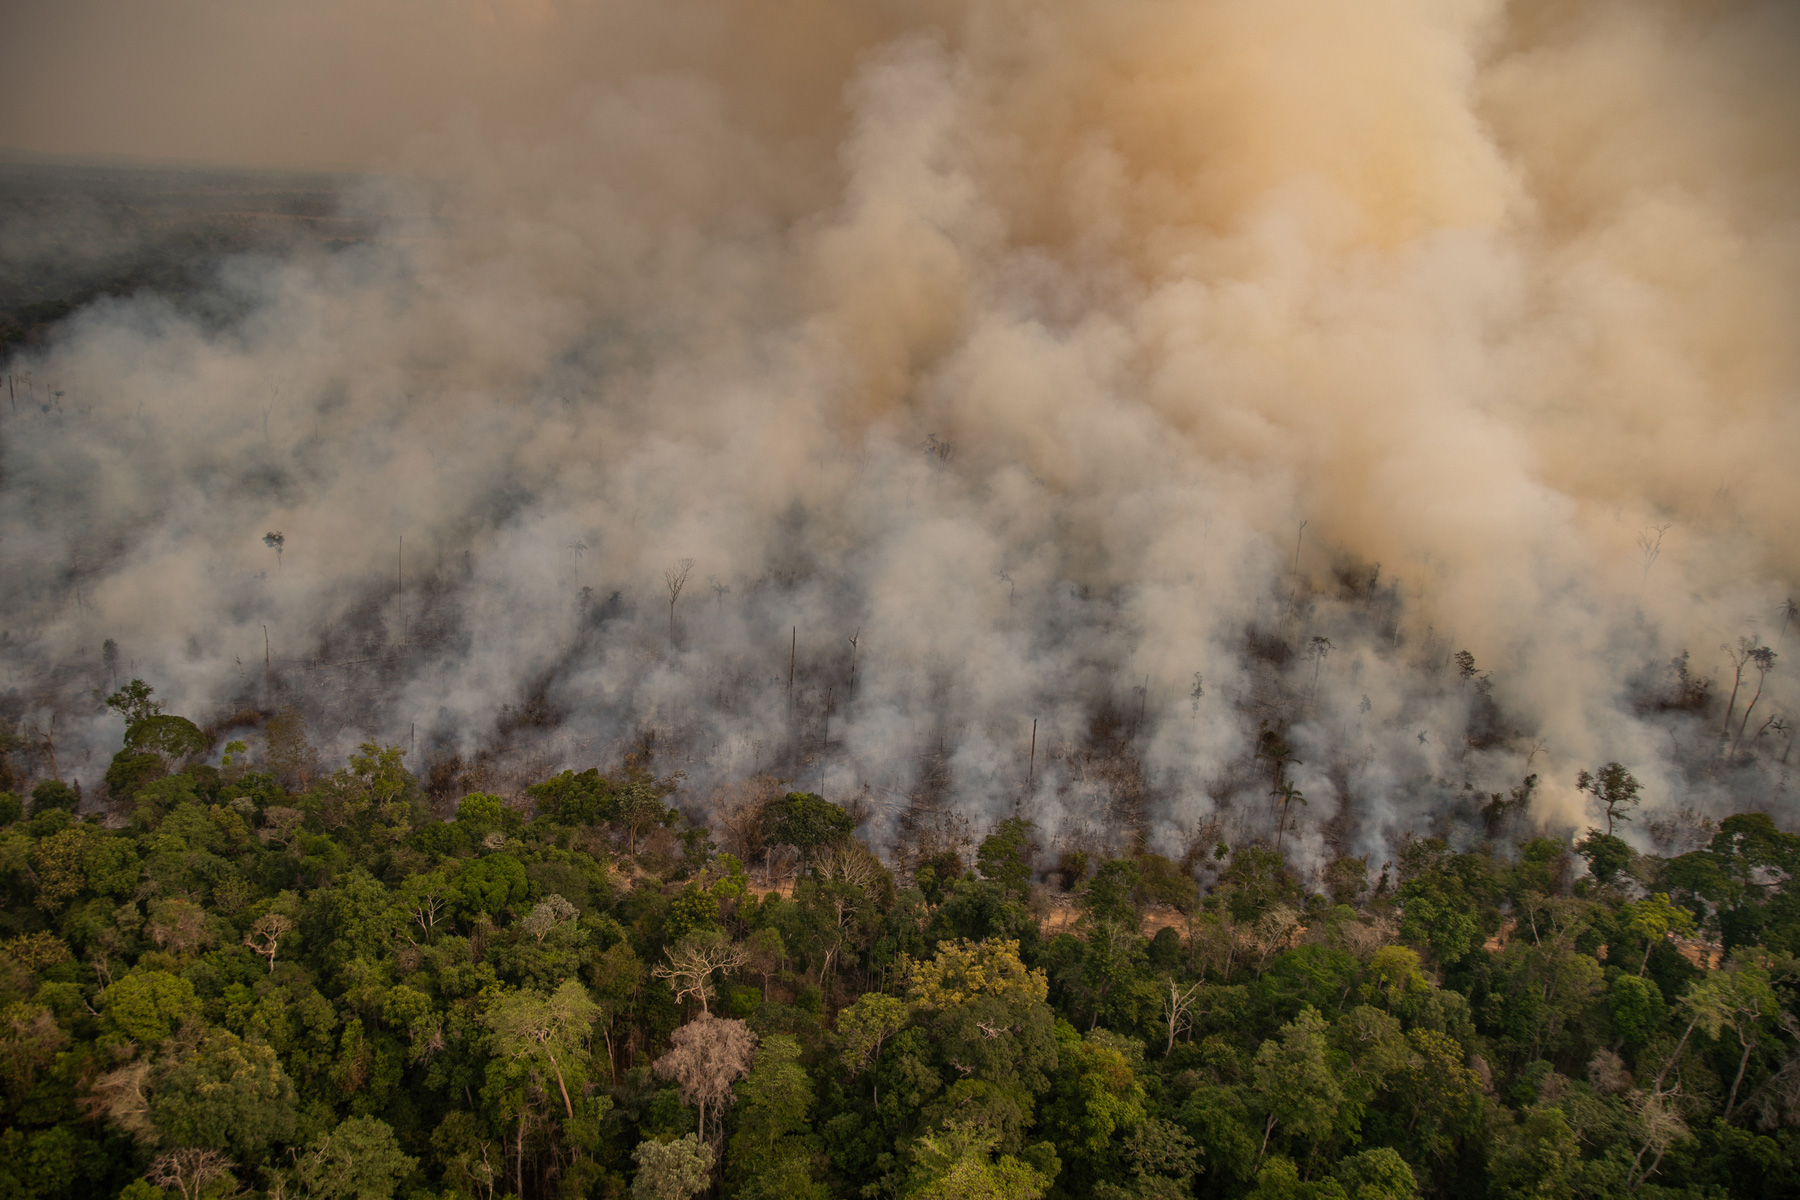 Fire in an area newly deforested registered by Deter (Real Time Deforestation Detection System), in Porto Velho, Rondônia state. Taken 16 Aug, 2020. CREDIT: © Christian Braga / Greenpeace